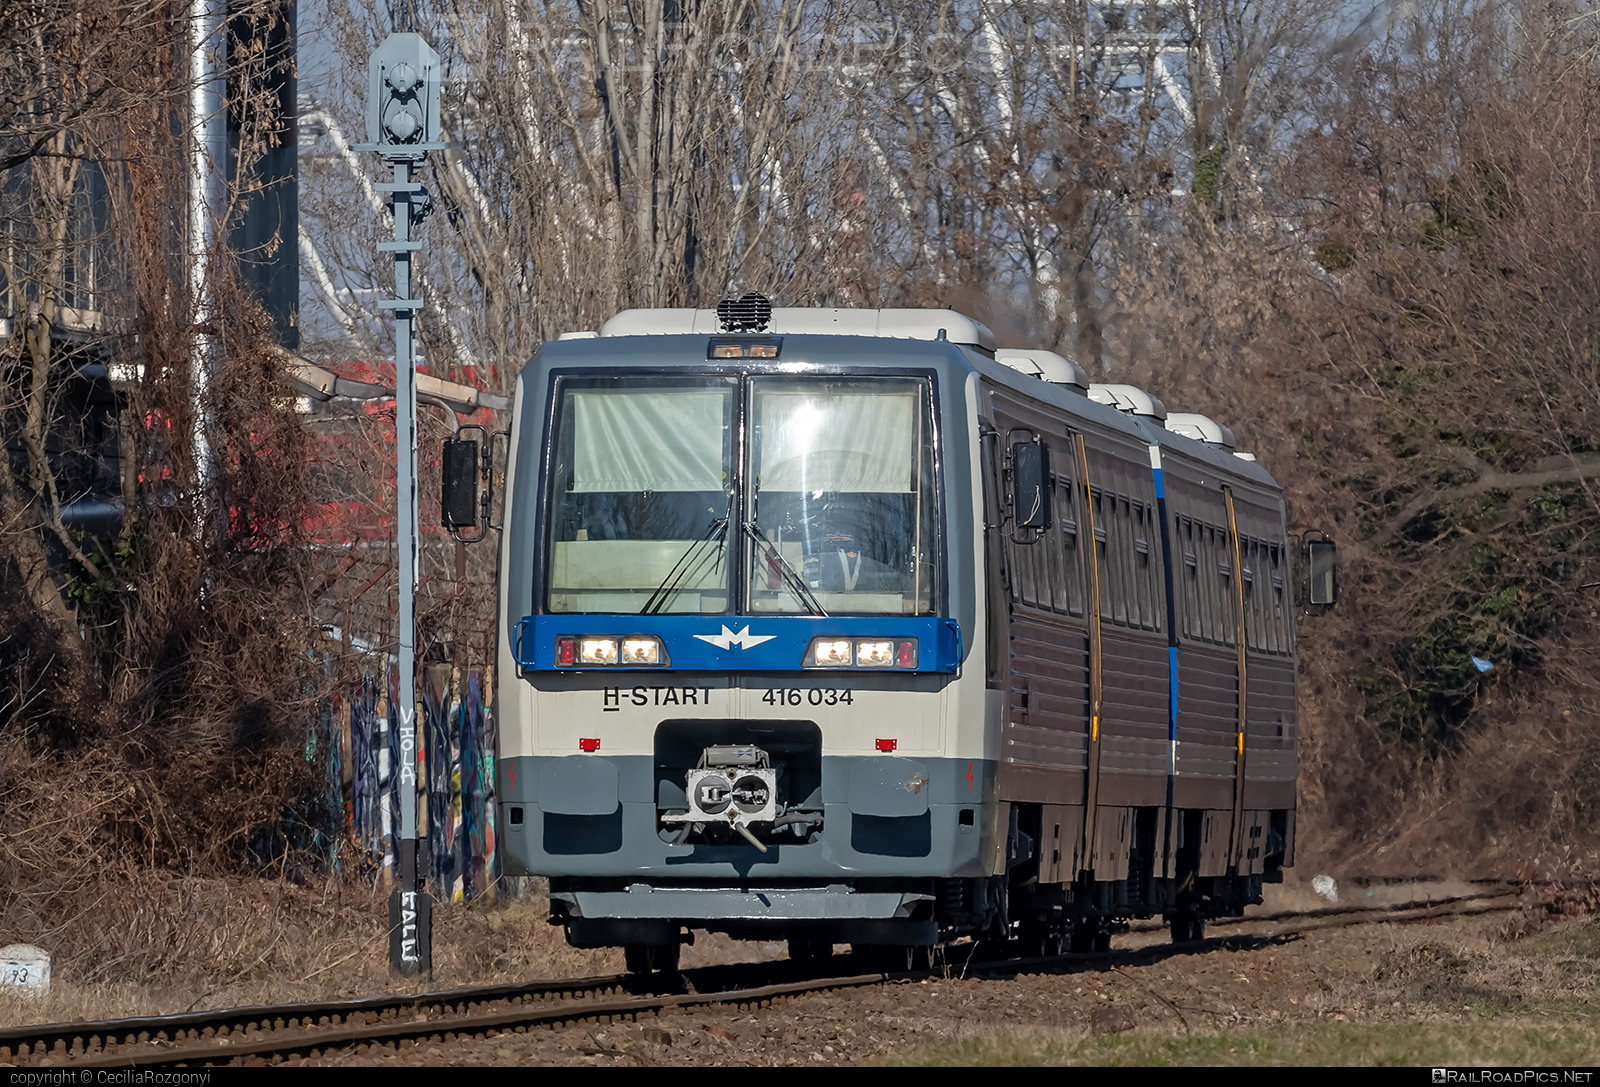 Metrovagonmash RA1 type 731.25 - 416 034 operated by MÁV-START ZRt. #mav #mav6341 #mavstart #mavstartzrt #metrovagonmash #metrovagonmash731 #metrovagonmashra1 #uzsgyi